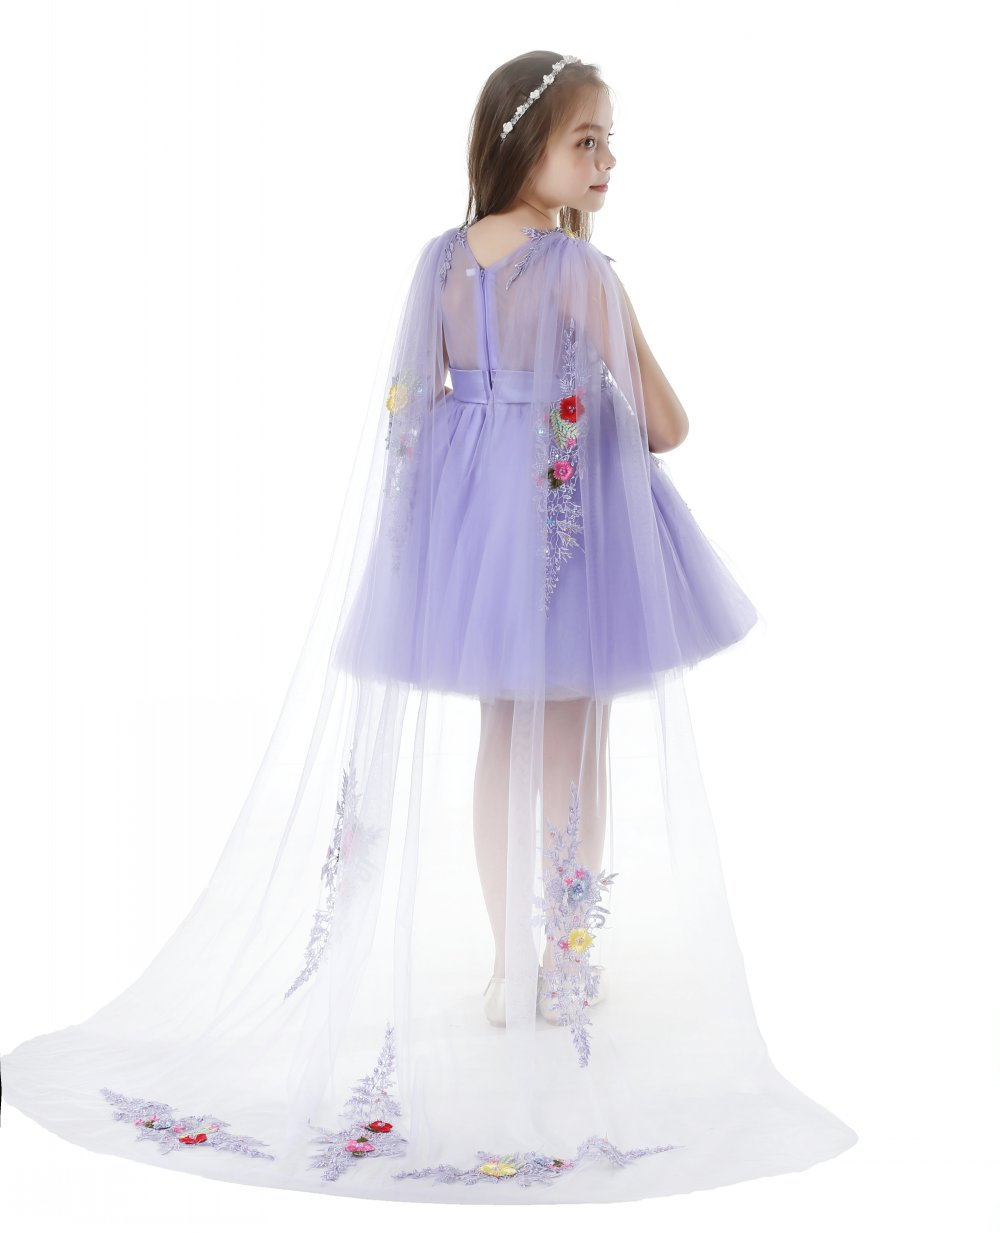 Free Shipping Knee Length 4-12 Years Kids Party Dress 2018 New Arrival Lilac Flower Girl Dresses With Train Child Princess Gowns knee length belted summer party clothing wedding dress kids 4 to 10 11 12 13 14 15 years 2017 child ivory flower girl lace dress